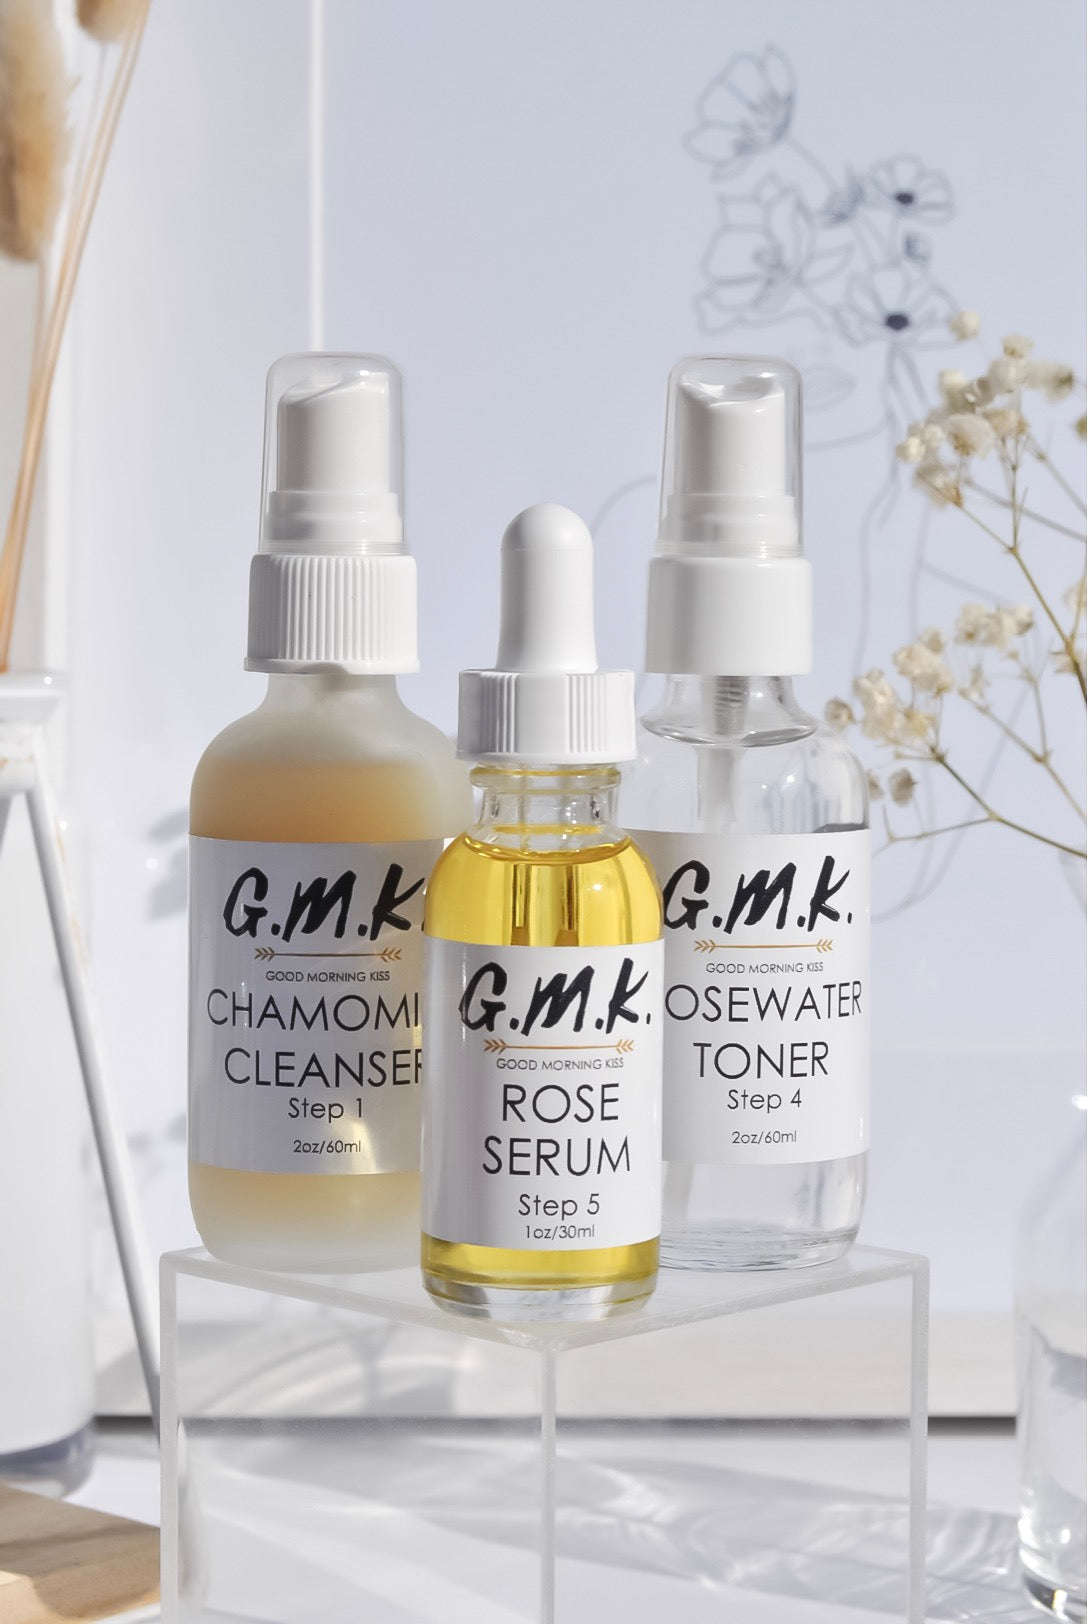 Daily kit: Chamomile Cleanser, Rosewater Toner and Rose Serum